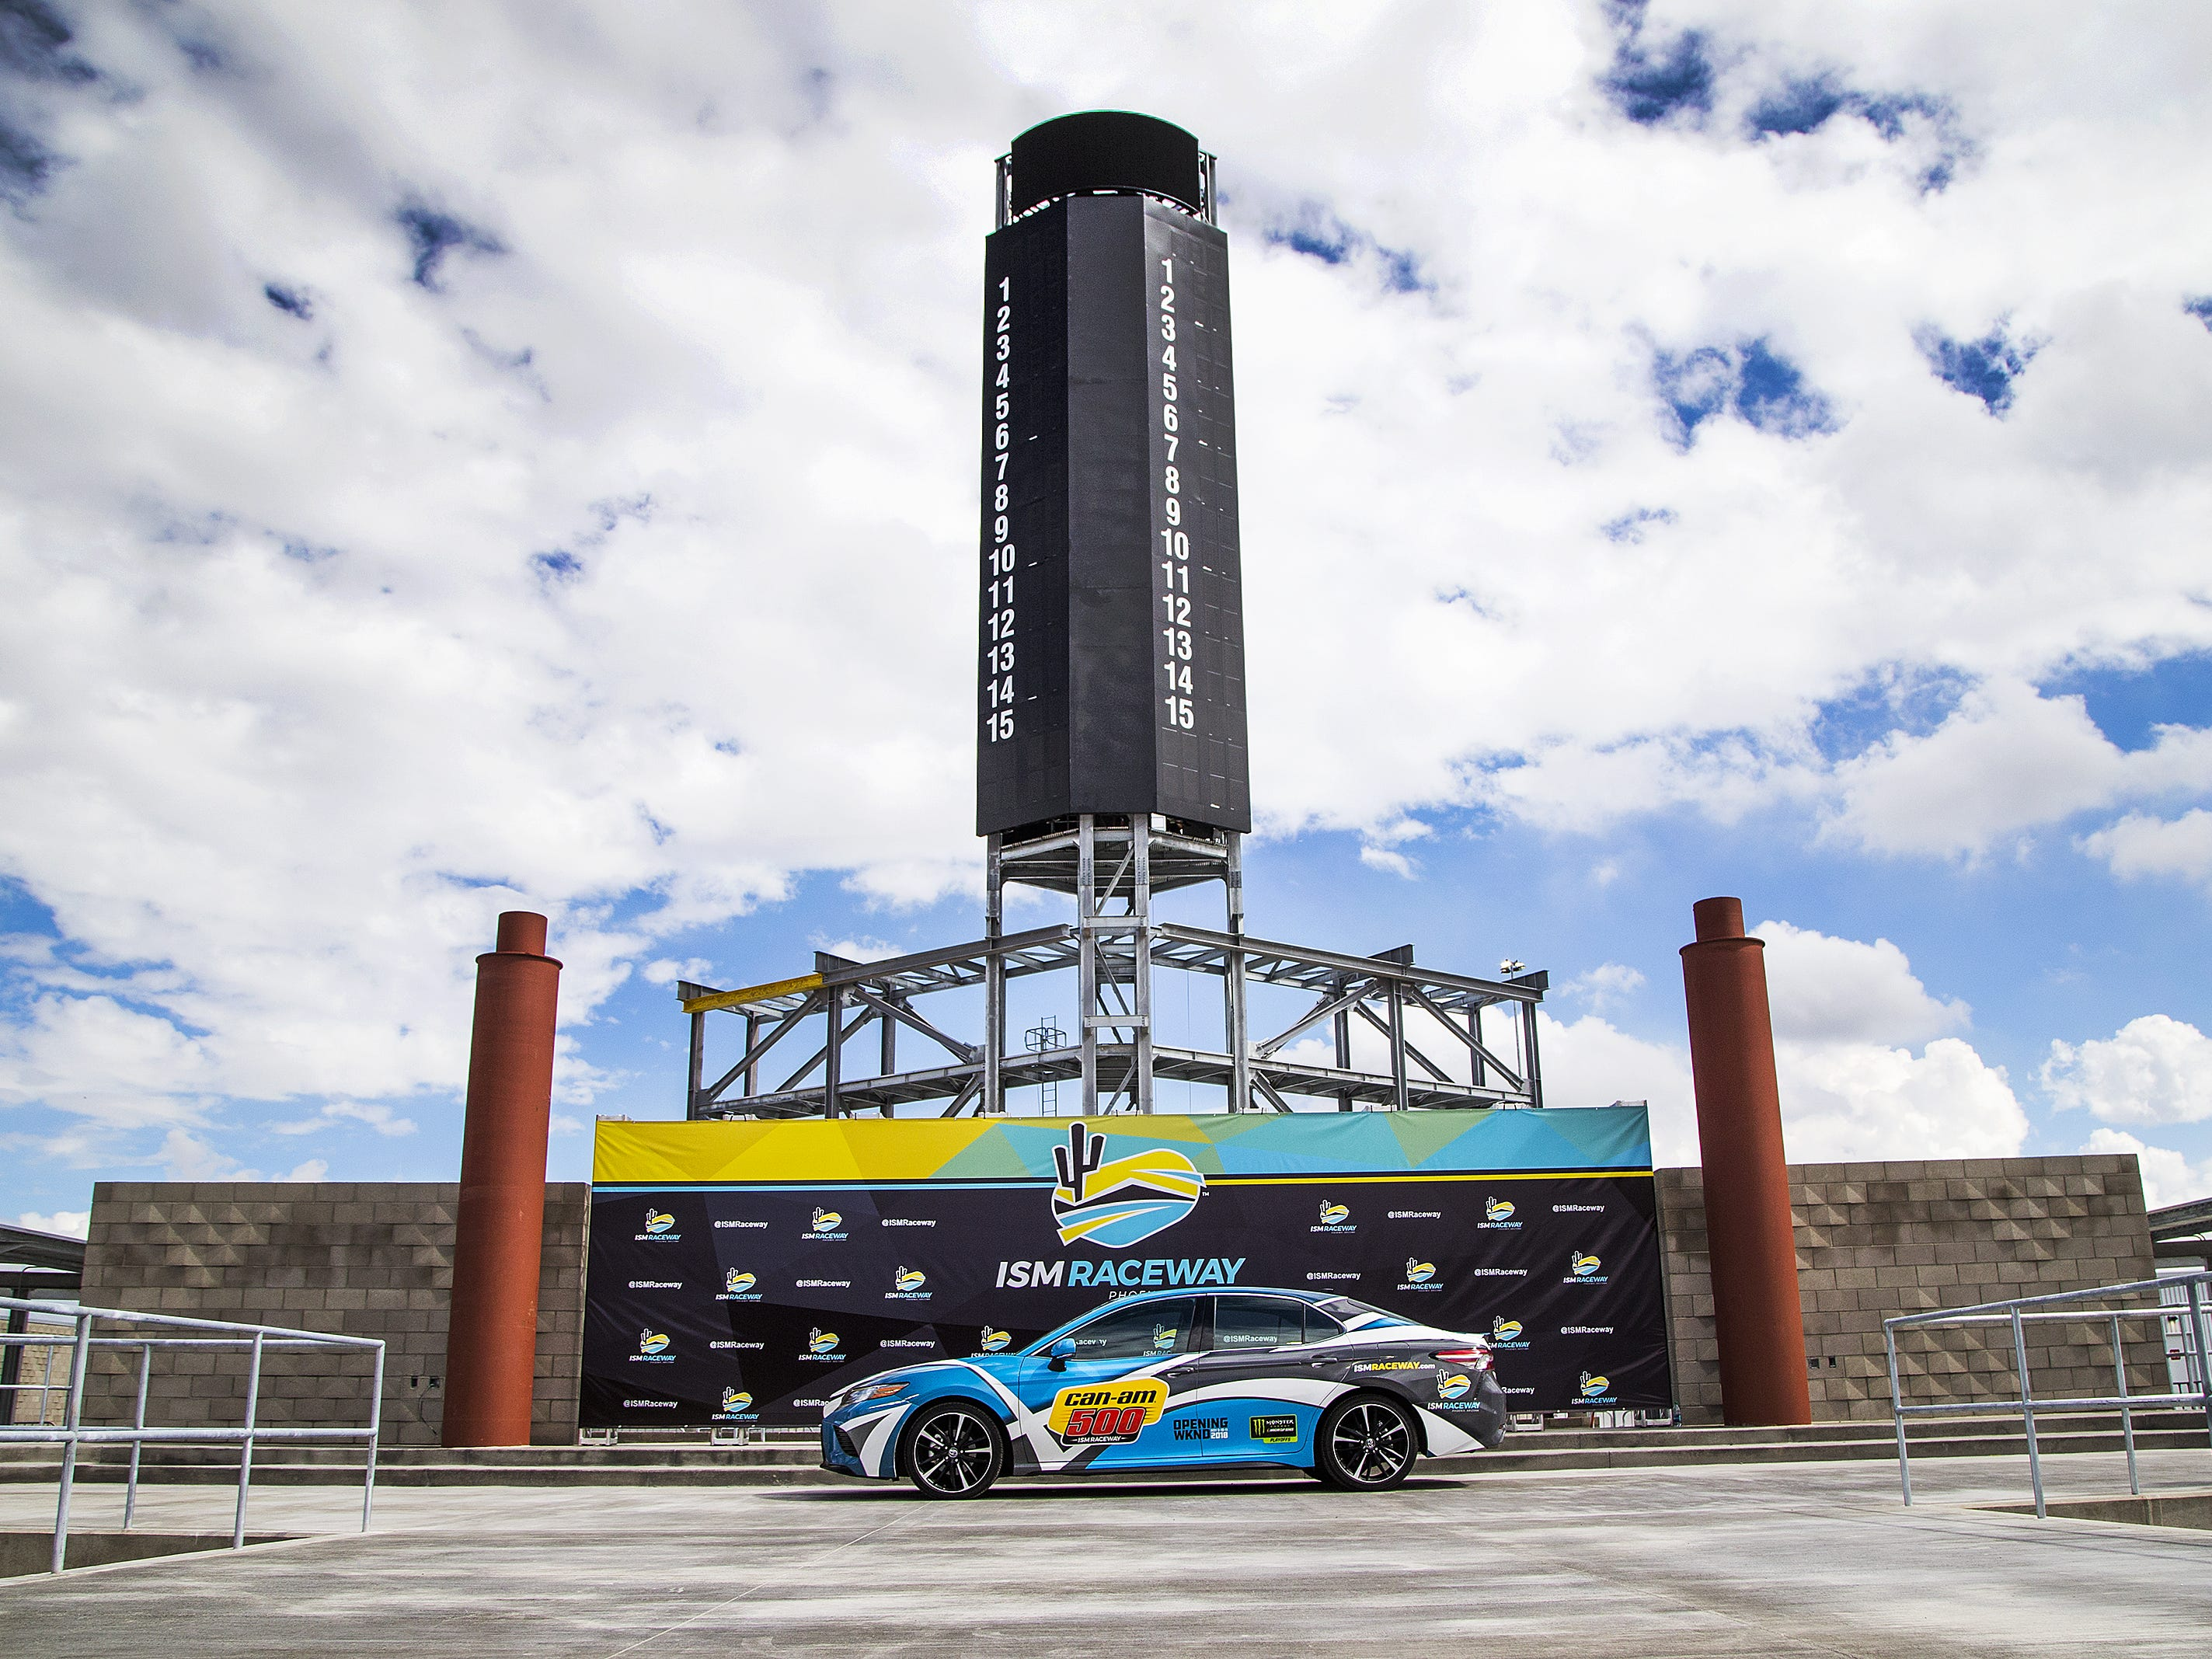 This is the new winner's stage under construction at ISM Raceway in Phoenix.  Final touches are being made in the massive renovation of the former Phoenix International Raceway, Wednesday, October 3, 2018.